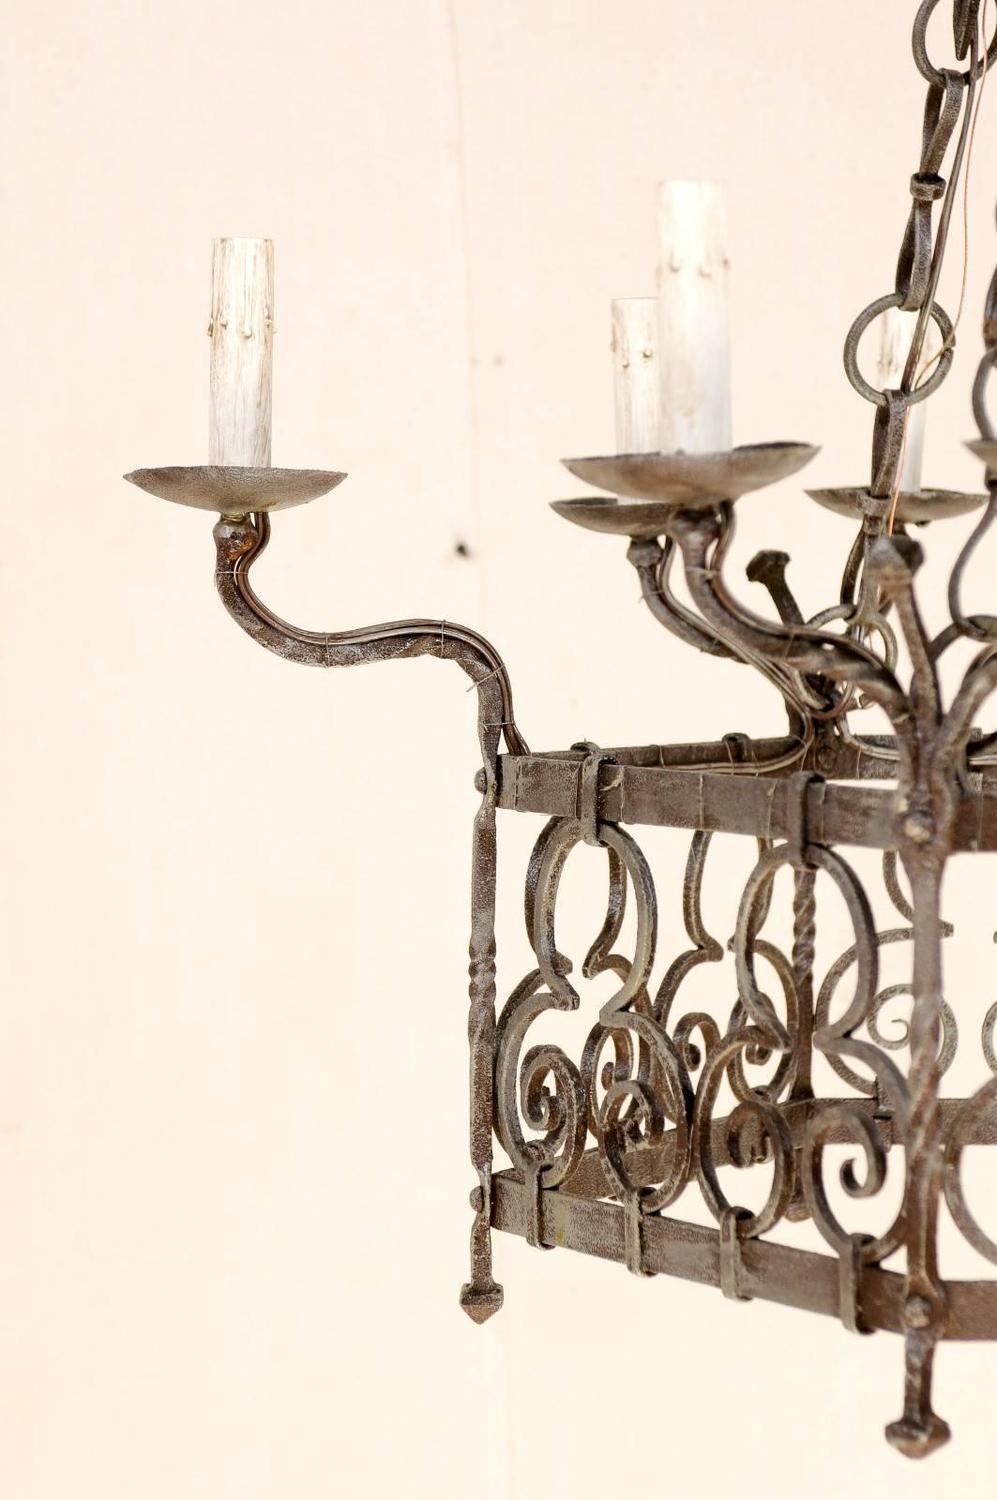 french gothic style nine light vintage iron chandelier with scroll designs for sale at 1stdibs. Black Bedroom Furniture Sets. Home Design Ideas